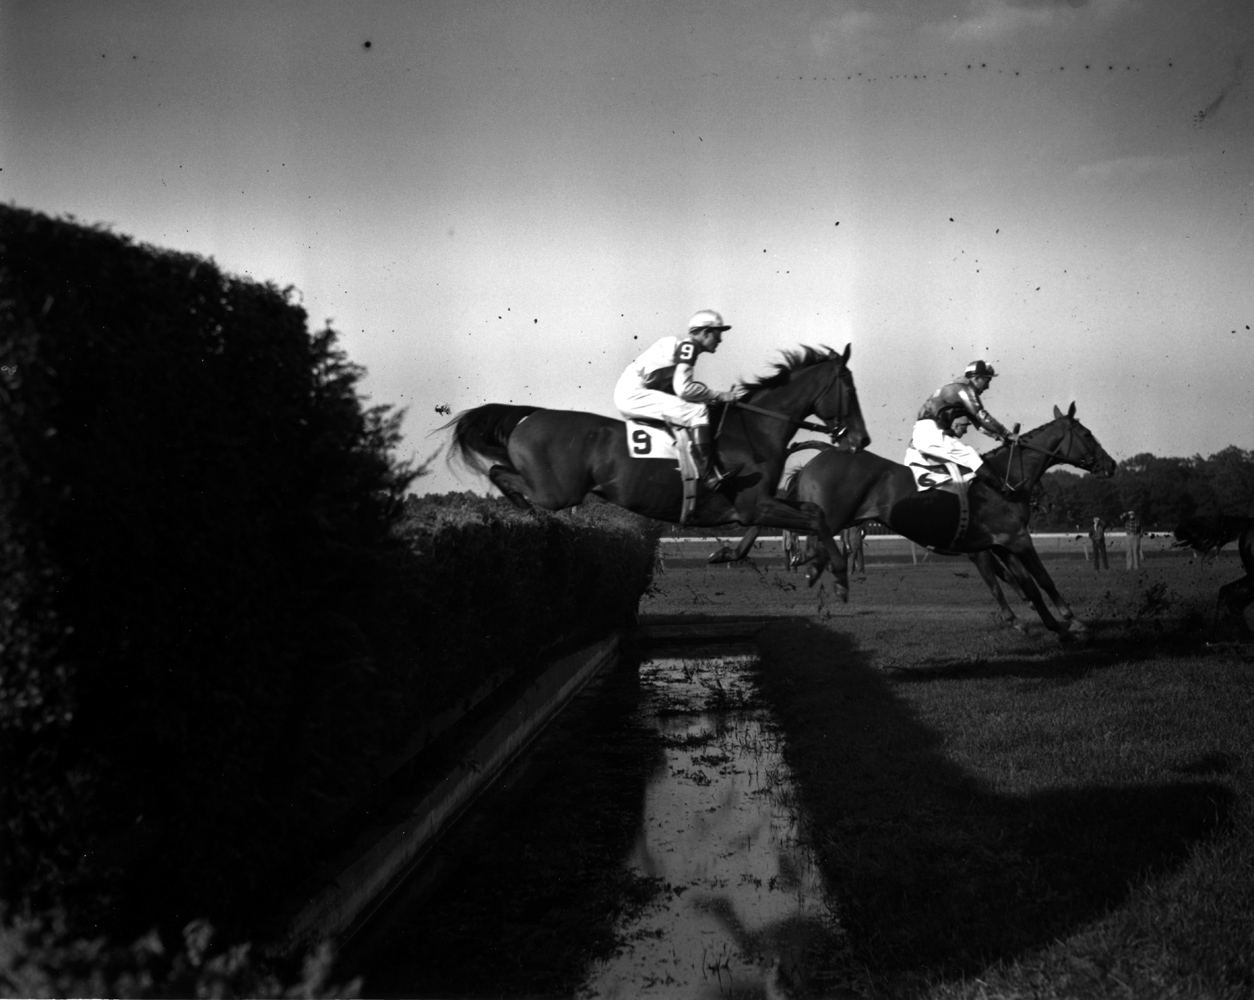 Elkridge (P. Smithwick up) taking a jump in the 1951 Grand National at Belmont Park, his final race (Keeneland Library Morgan Collection/Museum Collection)